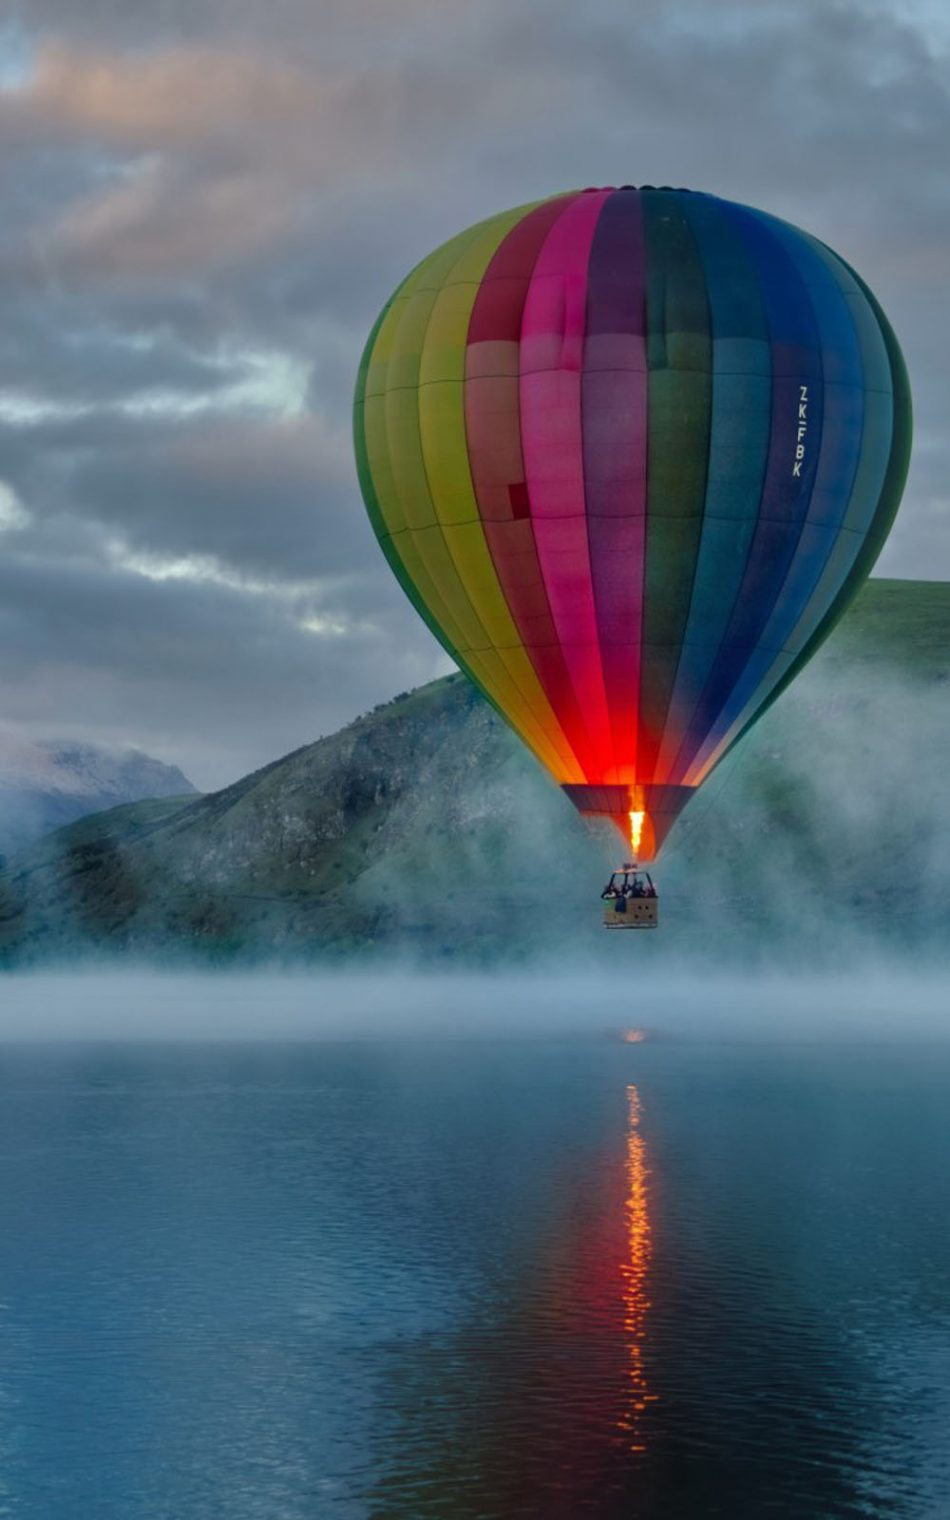 Colorful Hot Air Balloon Lake View Free 4k Ultra Hd Mobile Wallpaper